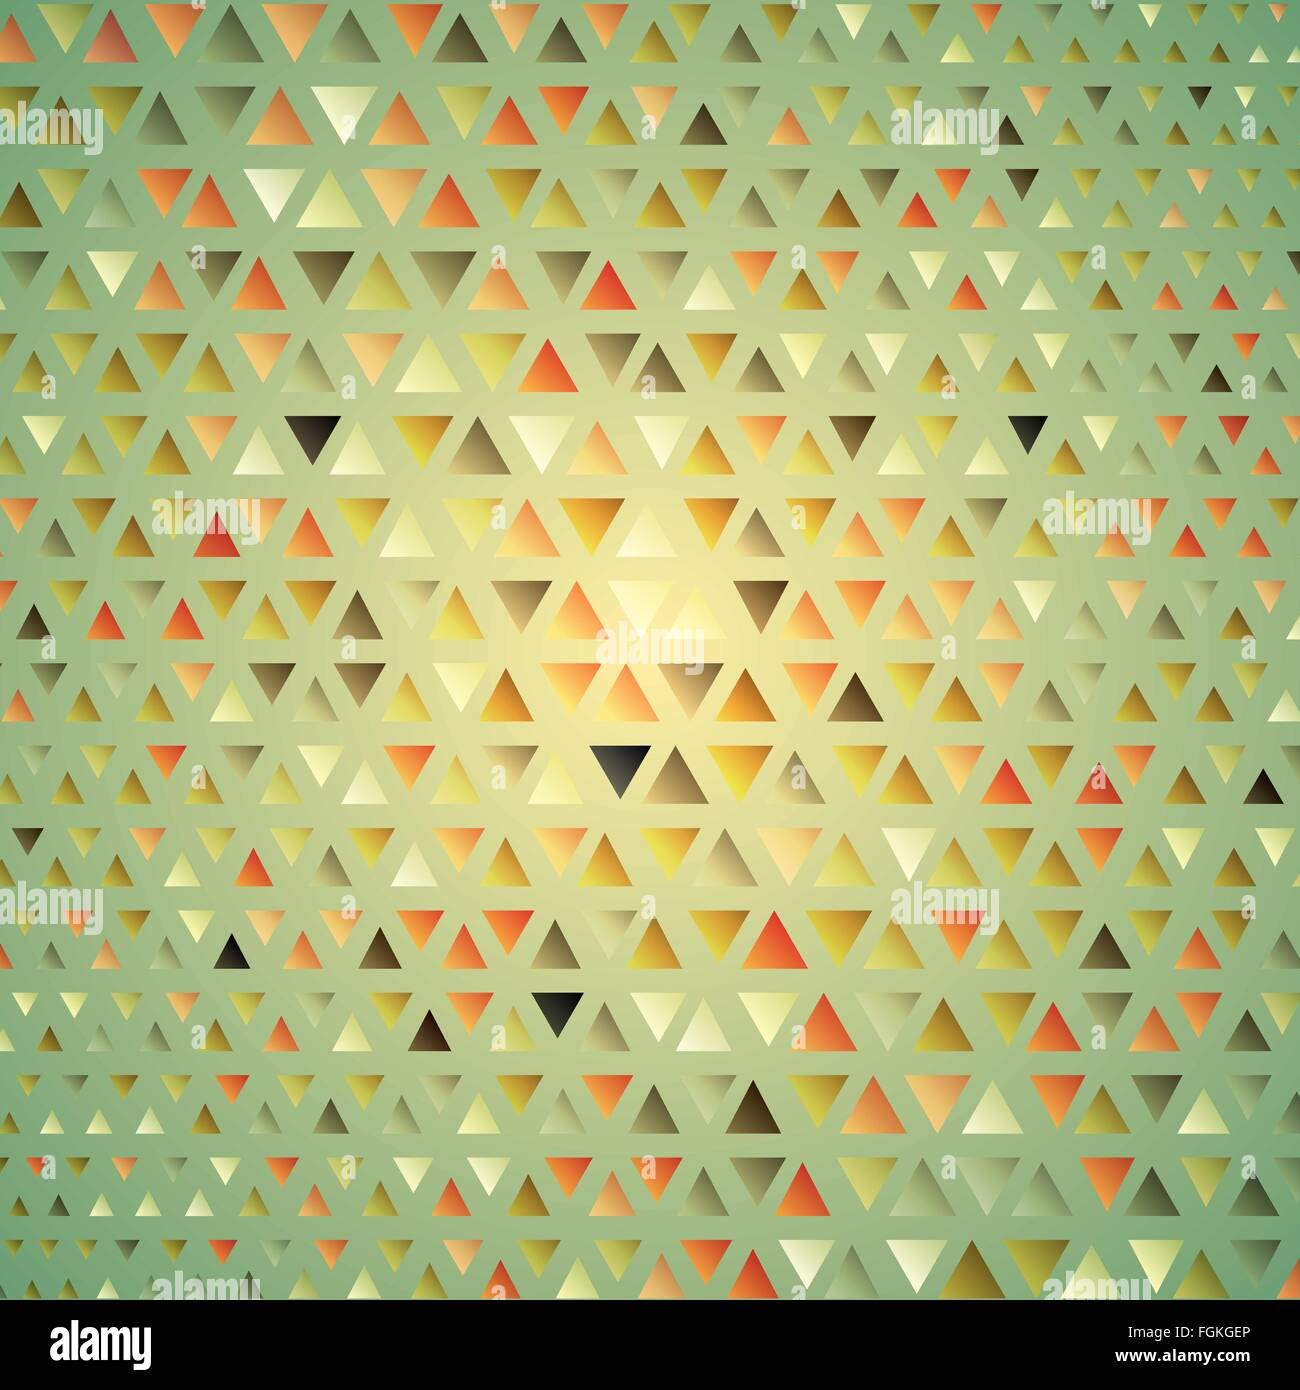 Texture with trianglesMosaic. can be used for wallpaper, pattern fills, web page background, surface textures. - Stock Vector